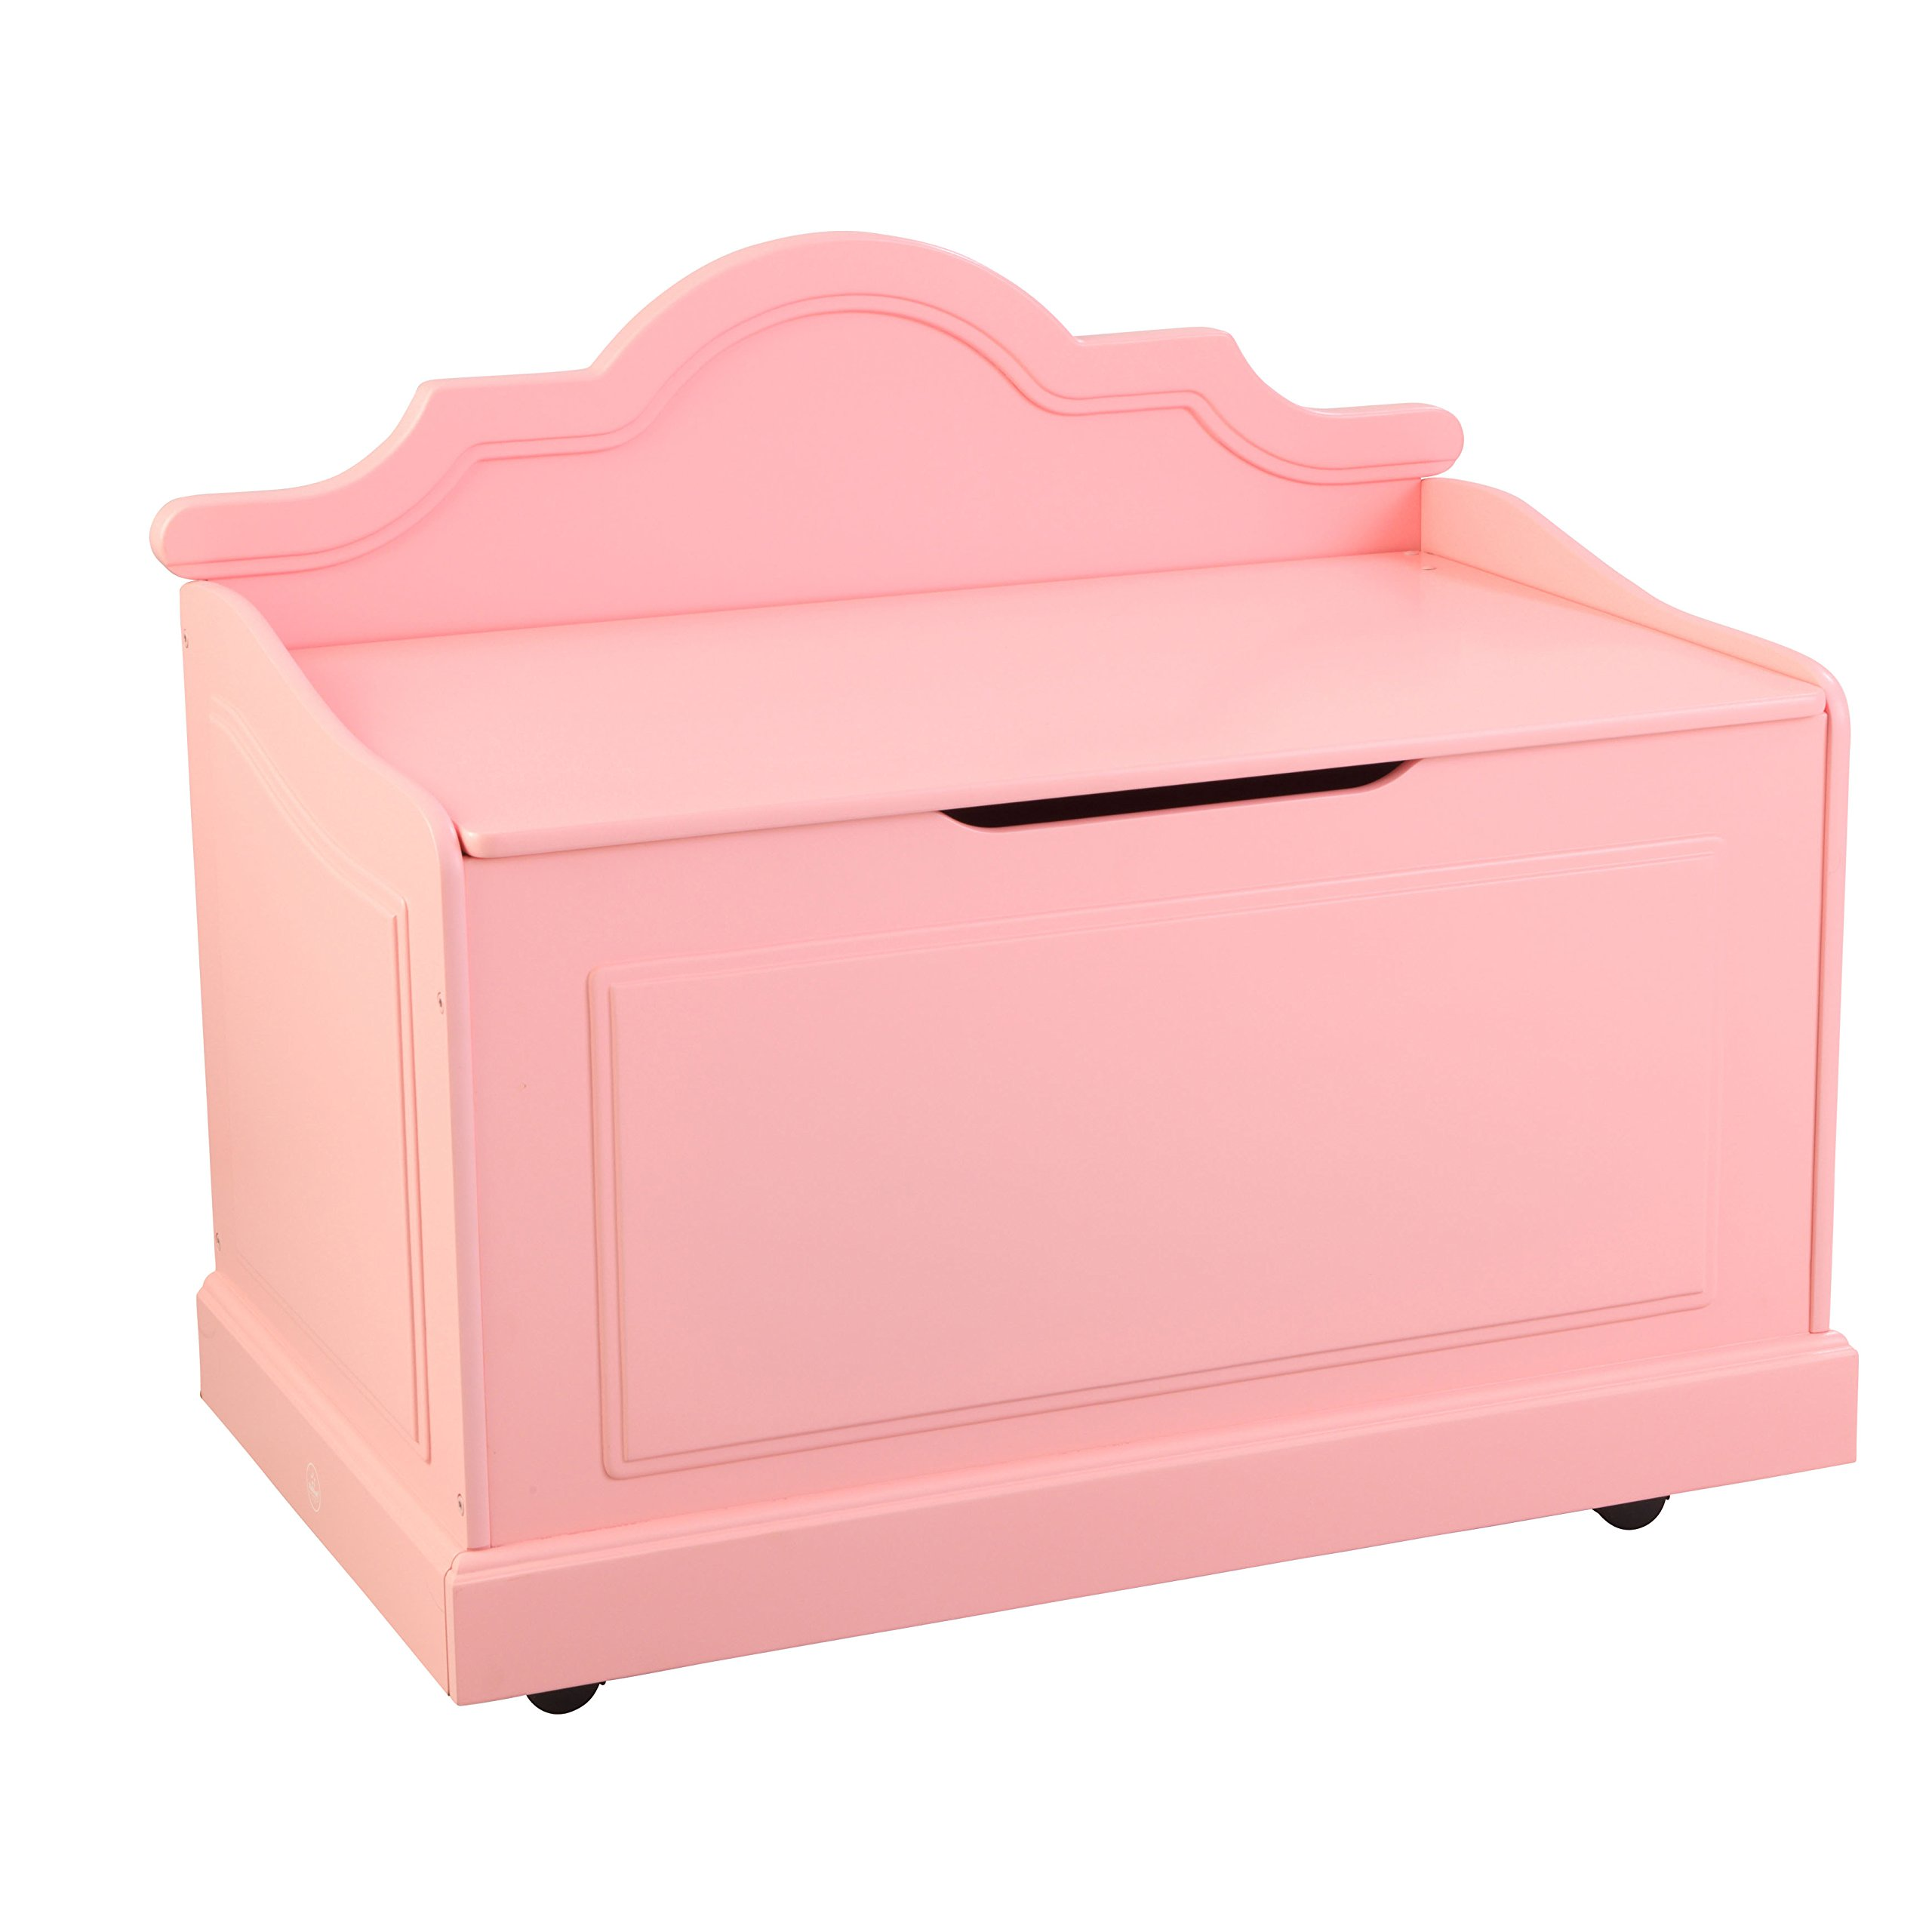 KidKraft Girl's Raleigh Toy Box, Pink